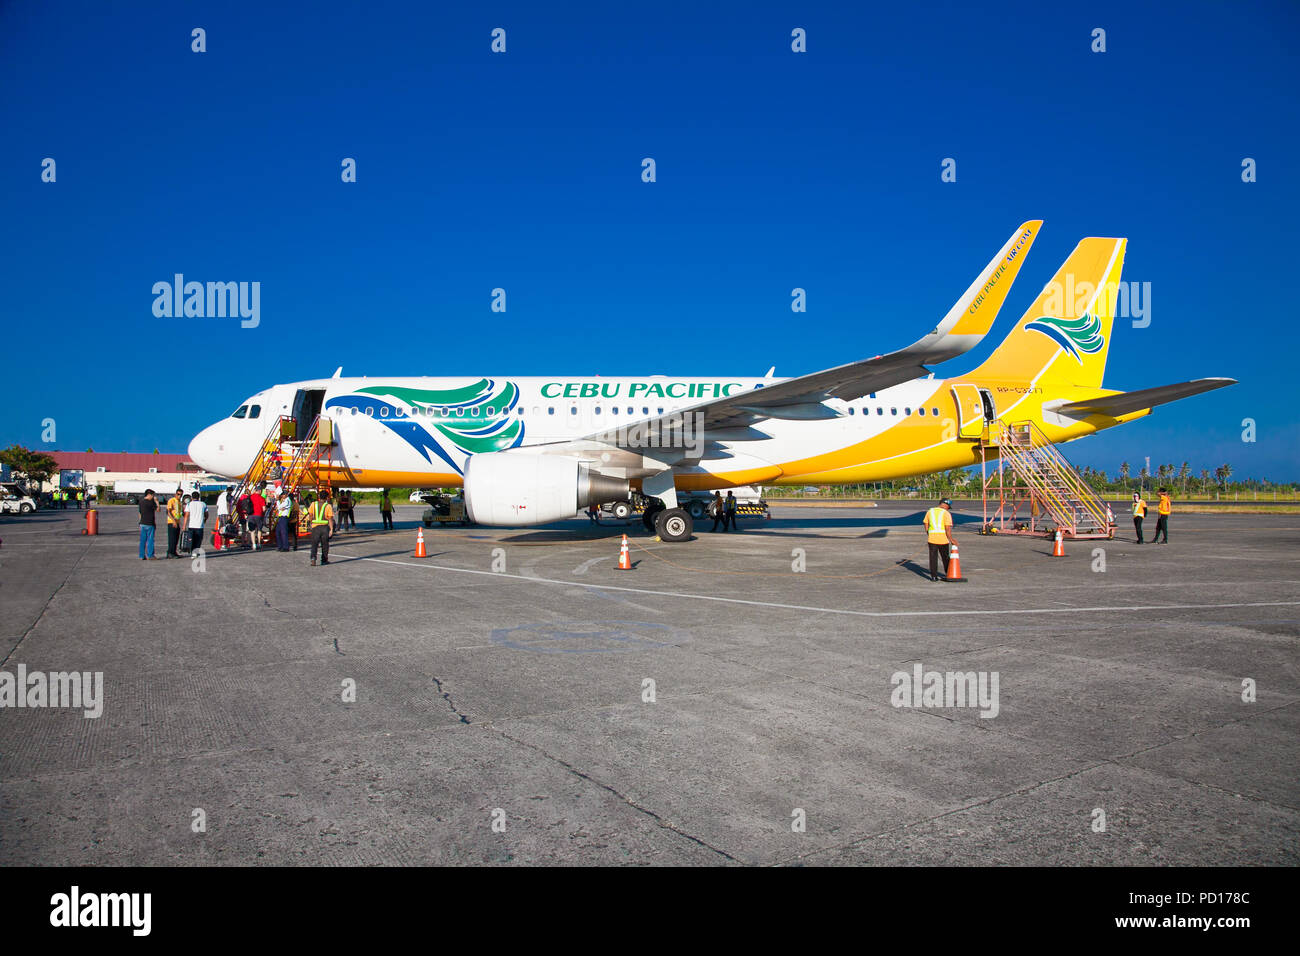 PUERTO PRINCESA PHILIPPINES - MARCH 23. 2016: Tourists embark on the Cebu Pacific aircraft  at Puerto Princesa International Airport on March 23, 2016 - Stock Image